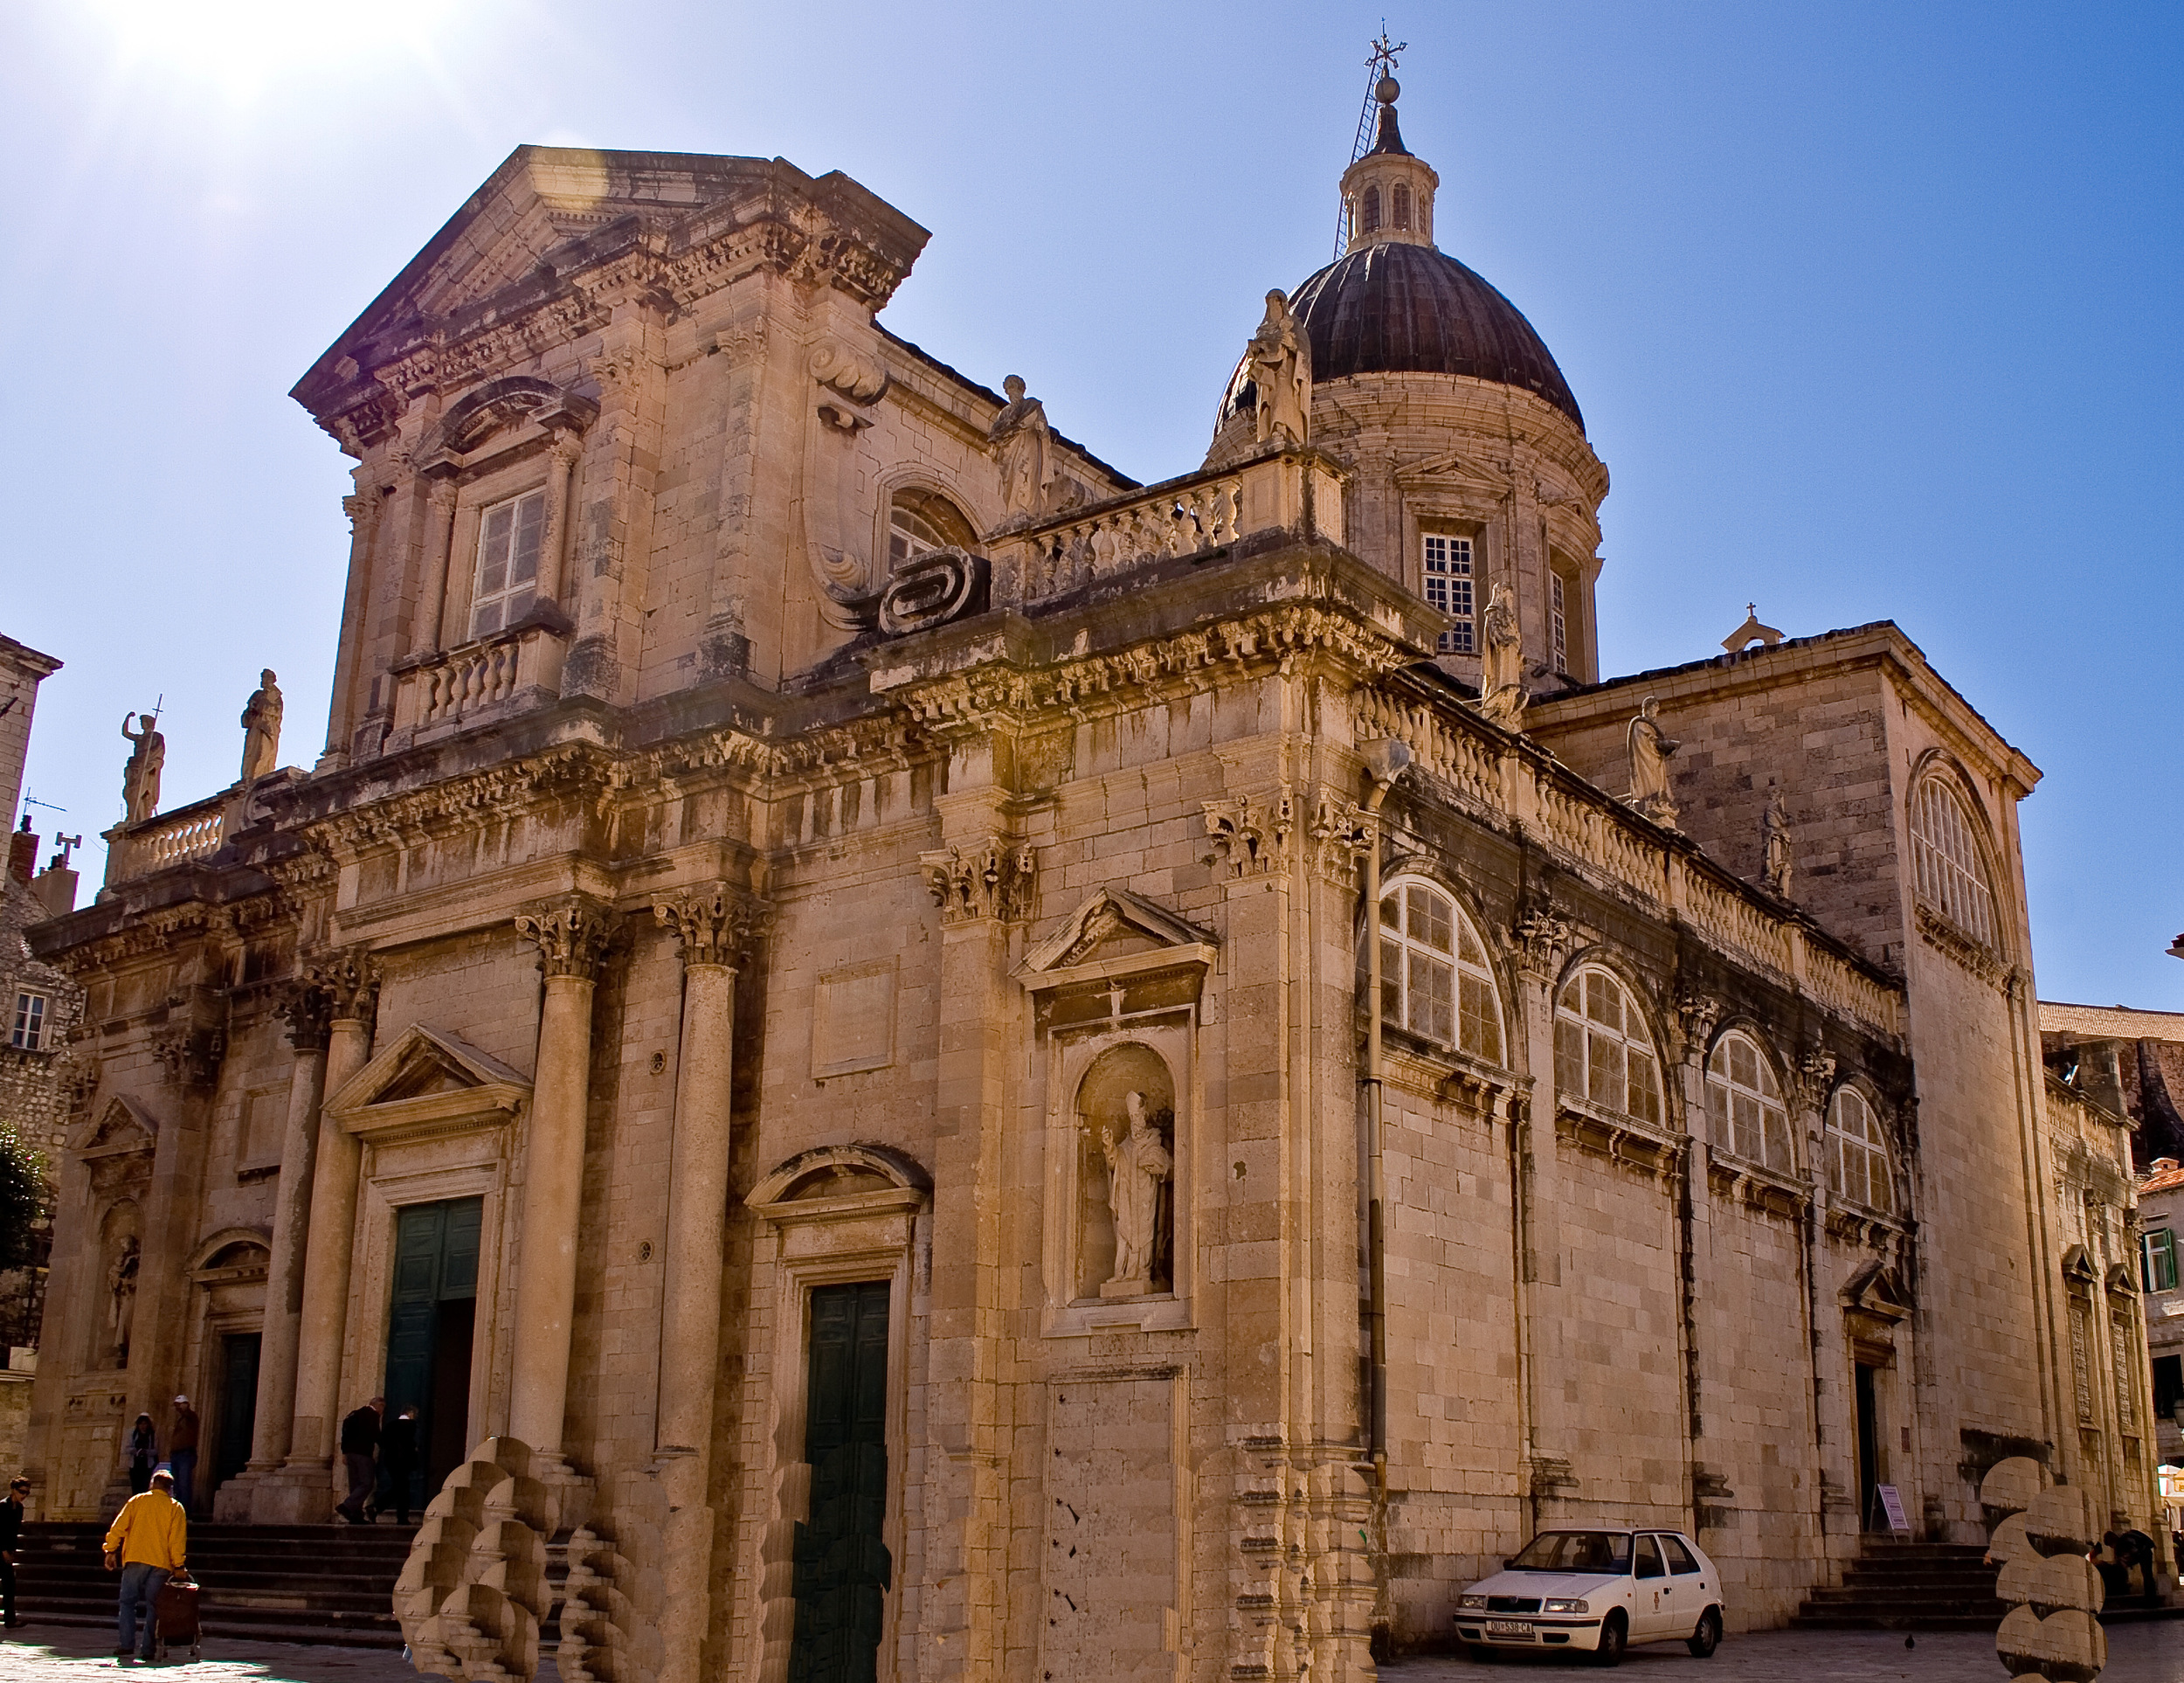 Dubrovnik_-_Cathedral_of_the_Assumption_of_the_Virgin_Mary_8166.jpg